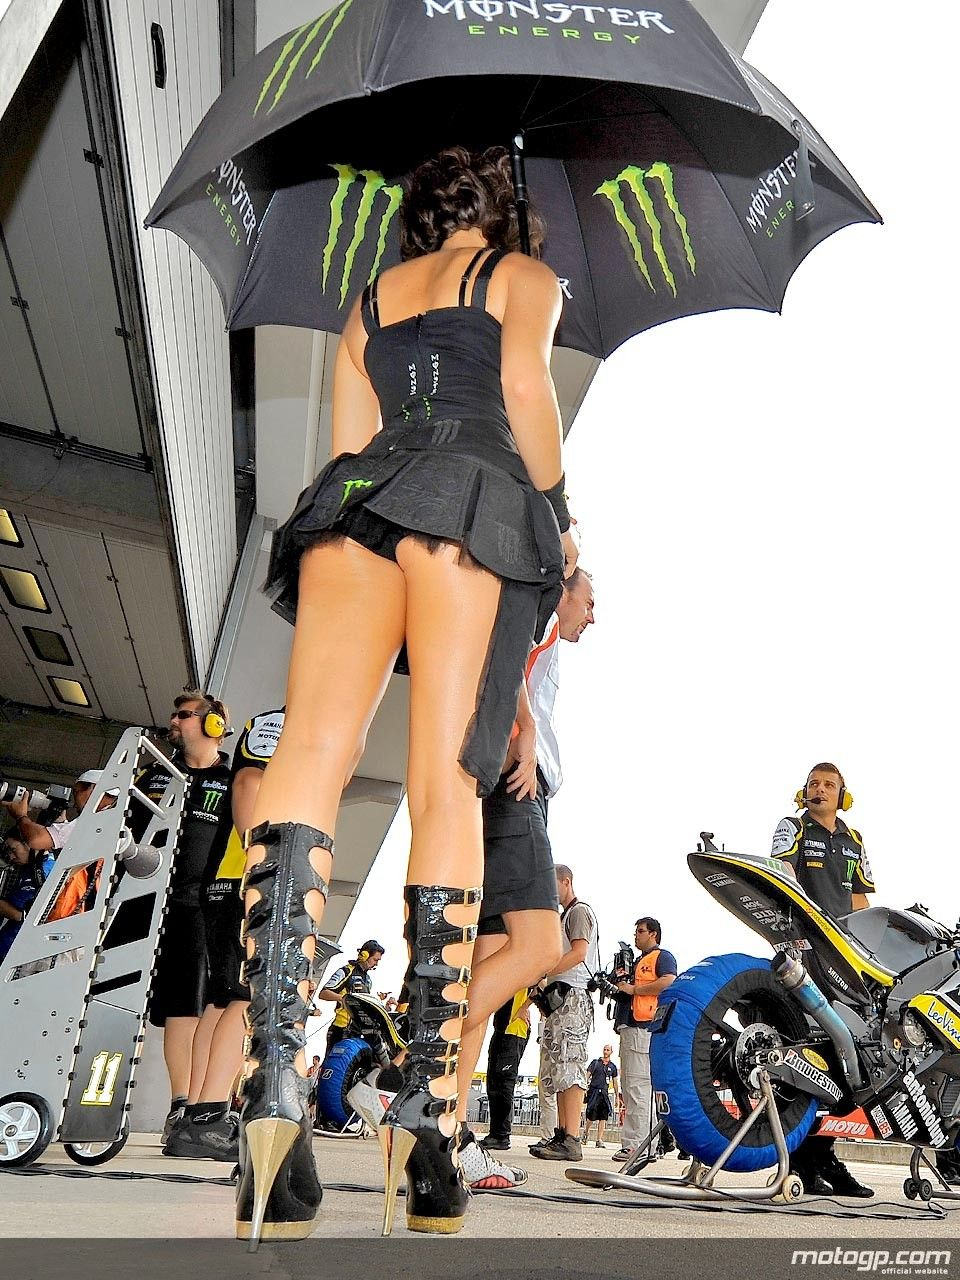 Monster energy girl xxx mobile the